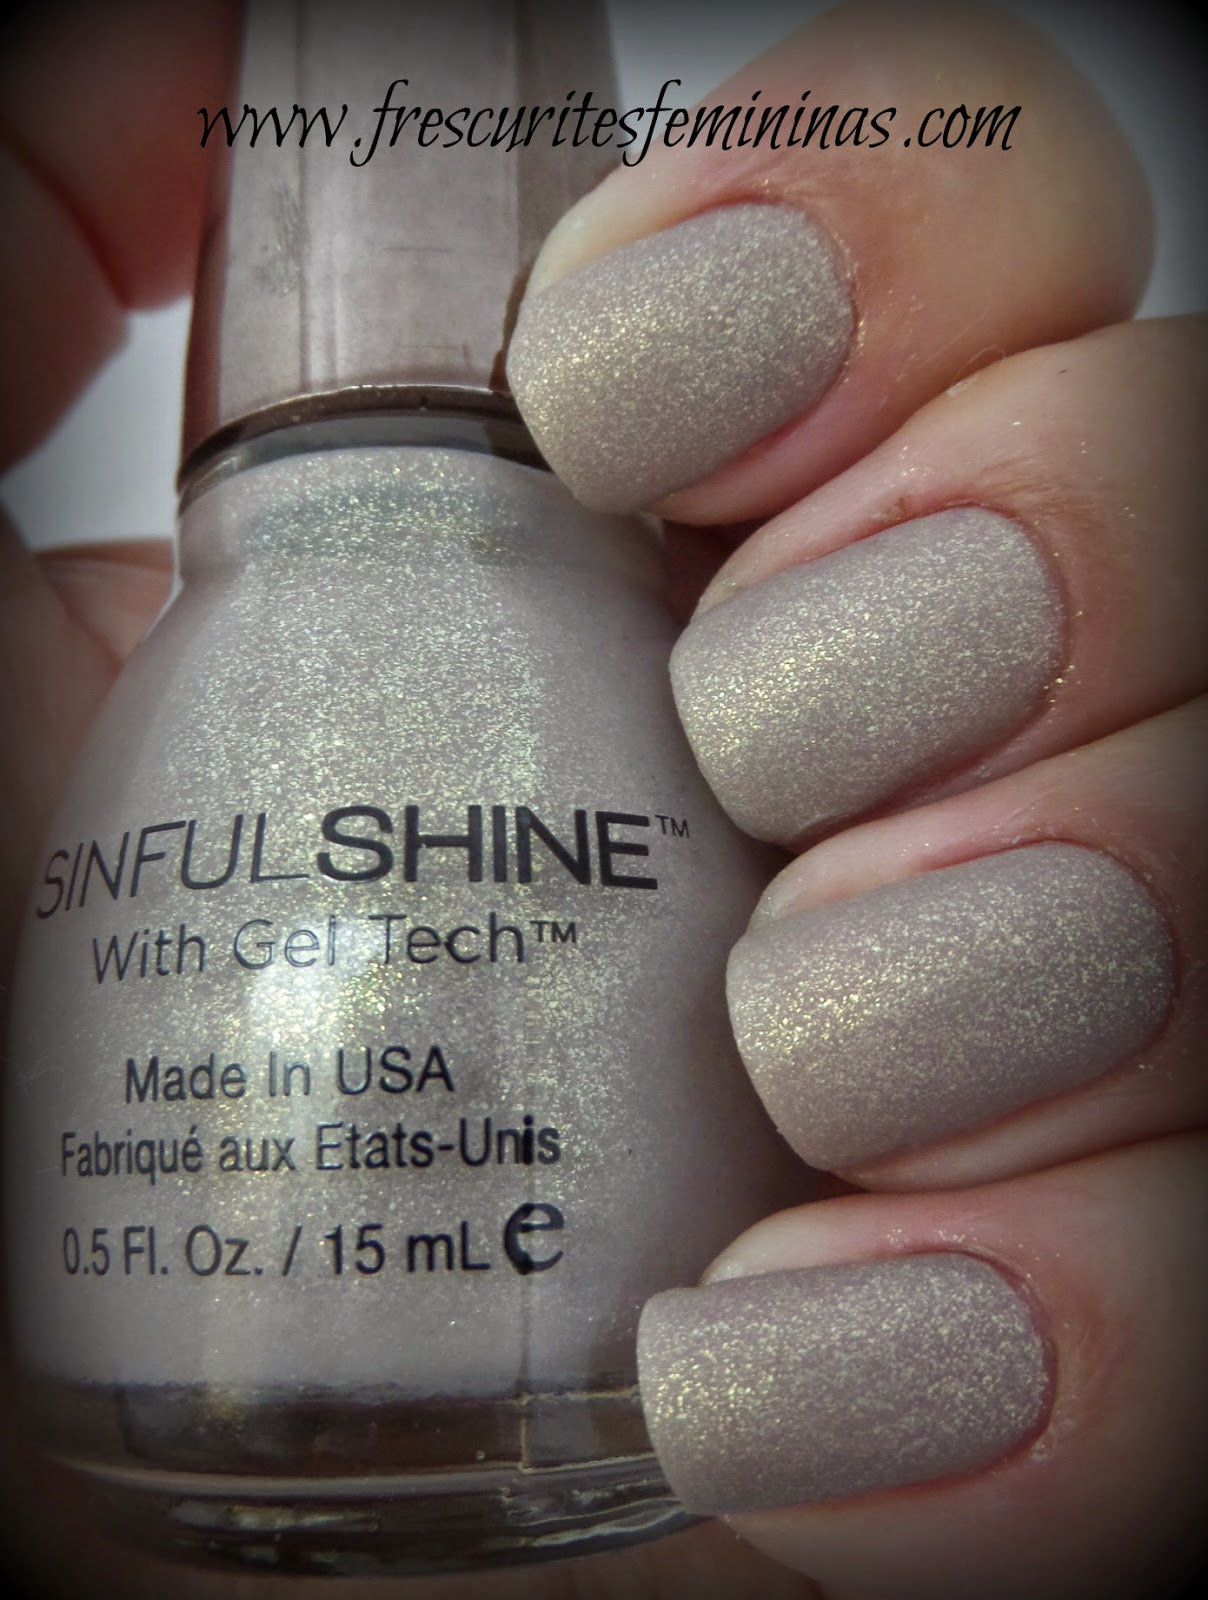 Sinfulshine, sinfulcolors, sinful shine, Prosecco, gel tech, frescurites femininas, matte top coat, cobertura mate